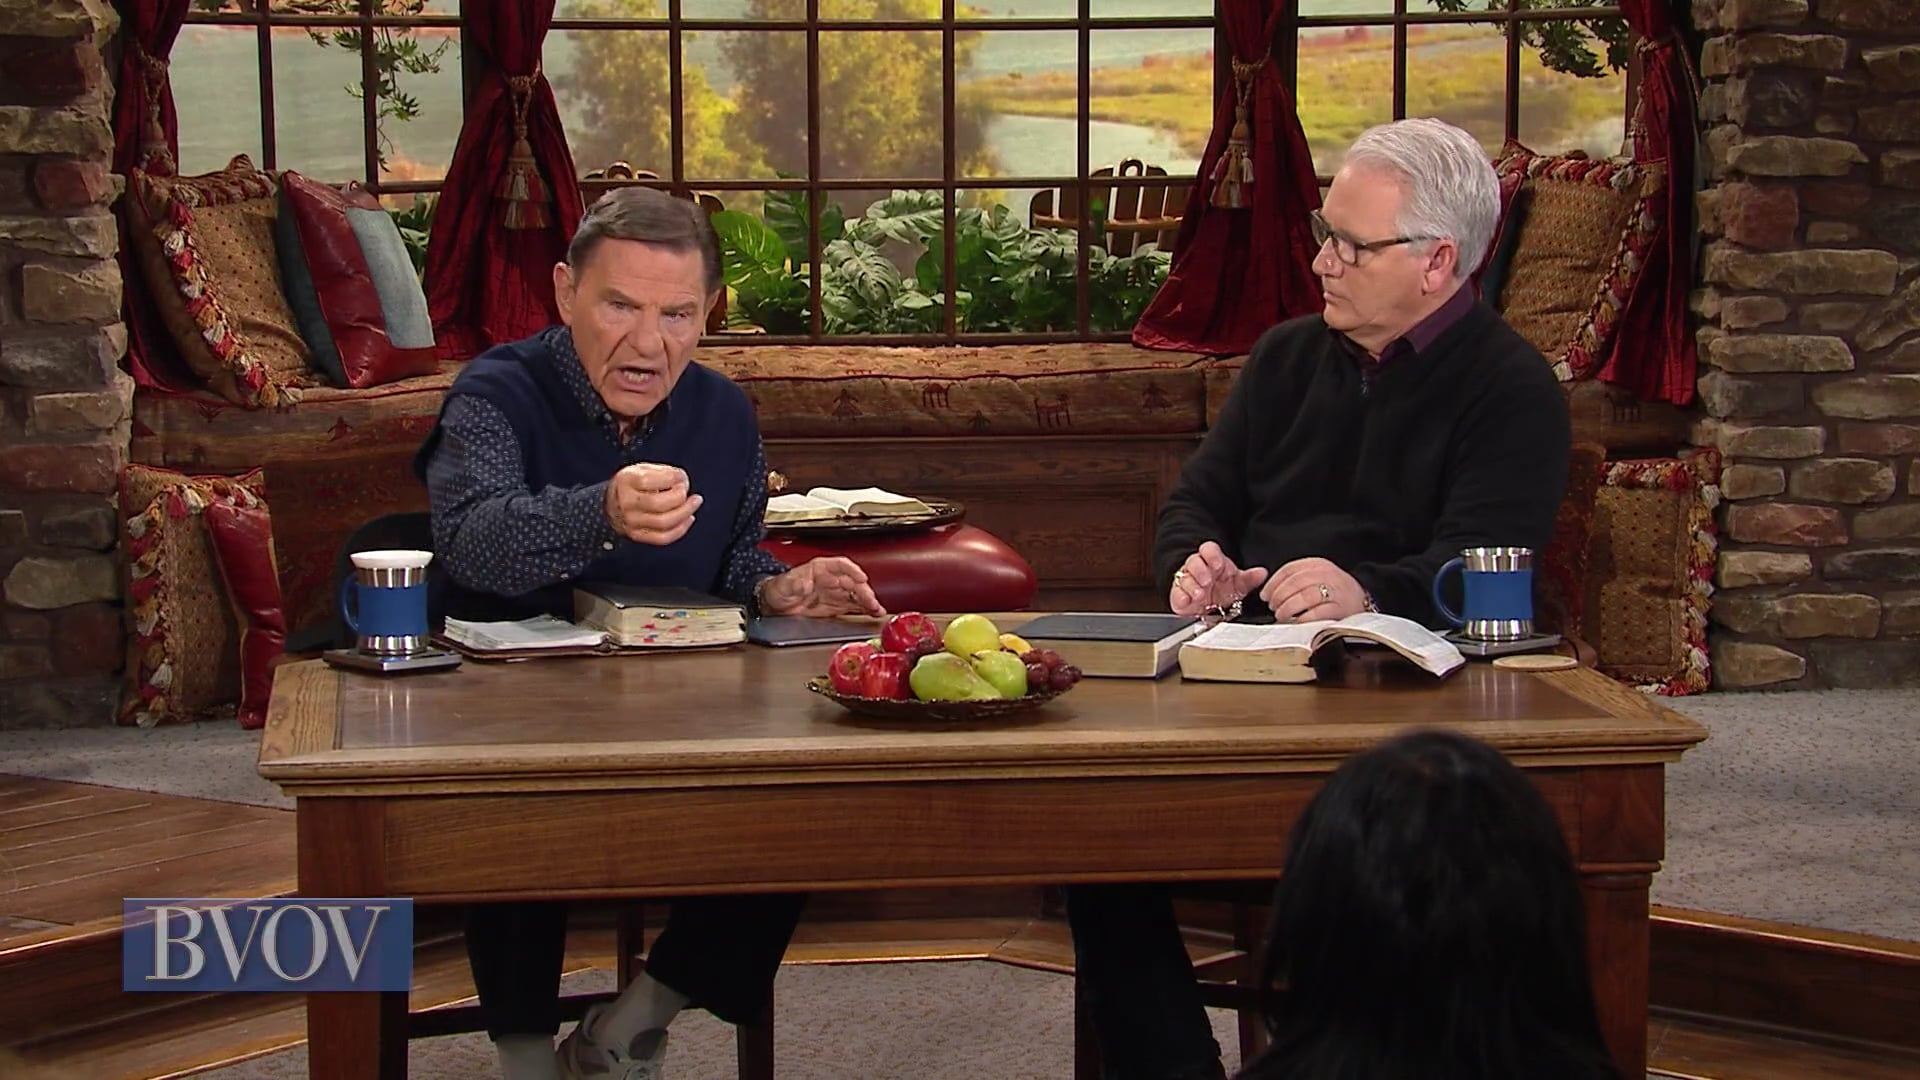 God never changes! Join Kenneth Copeland and Professor Greg Stephens on Believer's Voice of Victory as they show you why THE BLESSING, today, creates just as it did from the very beginning. Learn why we can see how God does everything from the time of Creation. That same BLESSING creates for you today!